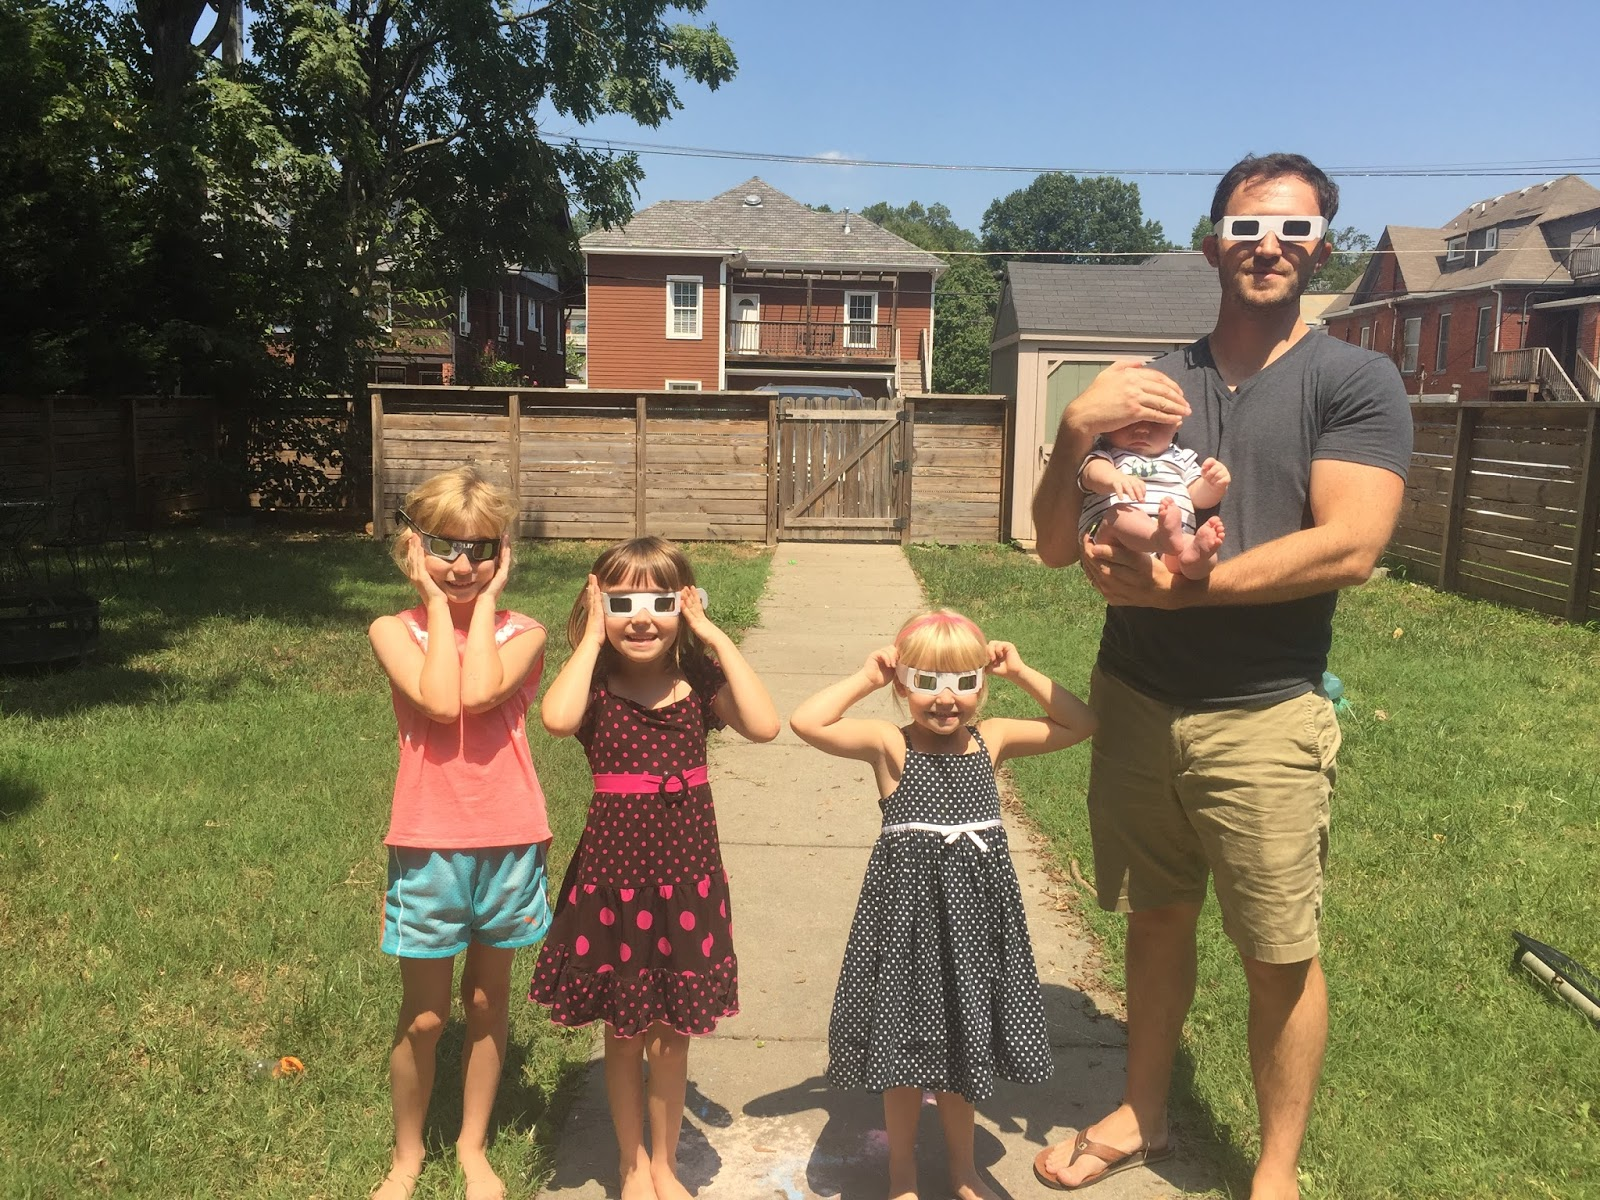 And Finally We Experienced A Beautiful Solar Eclipse Now That Was Delightful I Loved Experiencing At Home With My Family